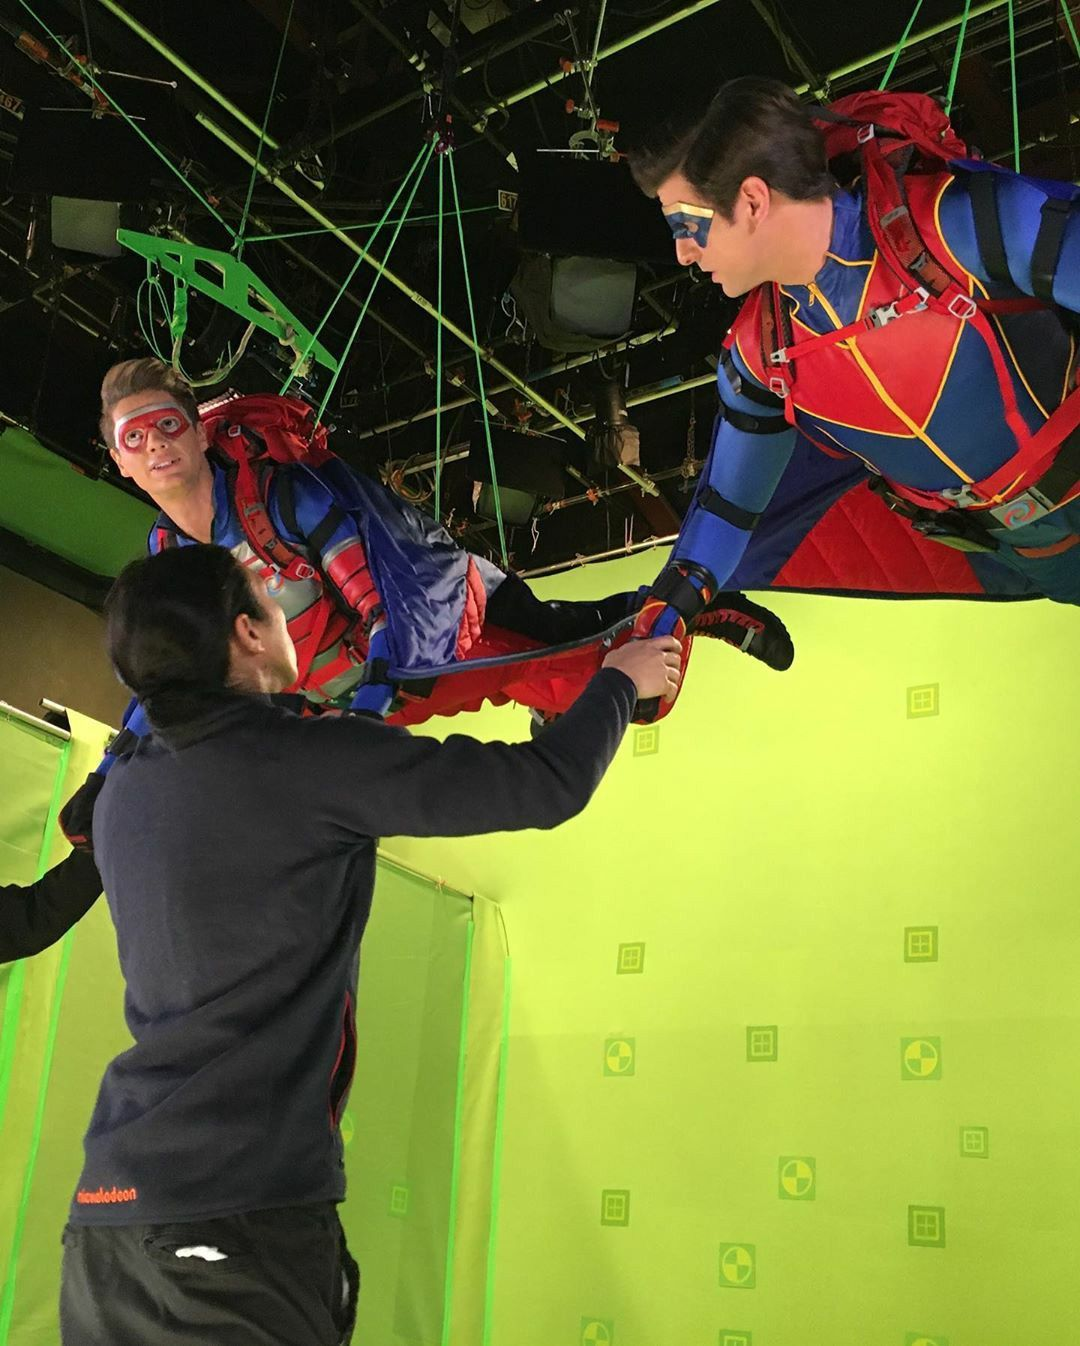 Captain Man And Kid Danger Image By Felicia Dragotto In 2020 Henry Danger Actor Henry Danger Nickelodeon Jace Norman Snapchat